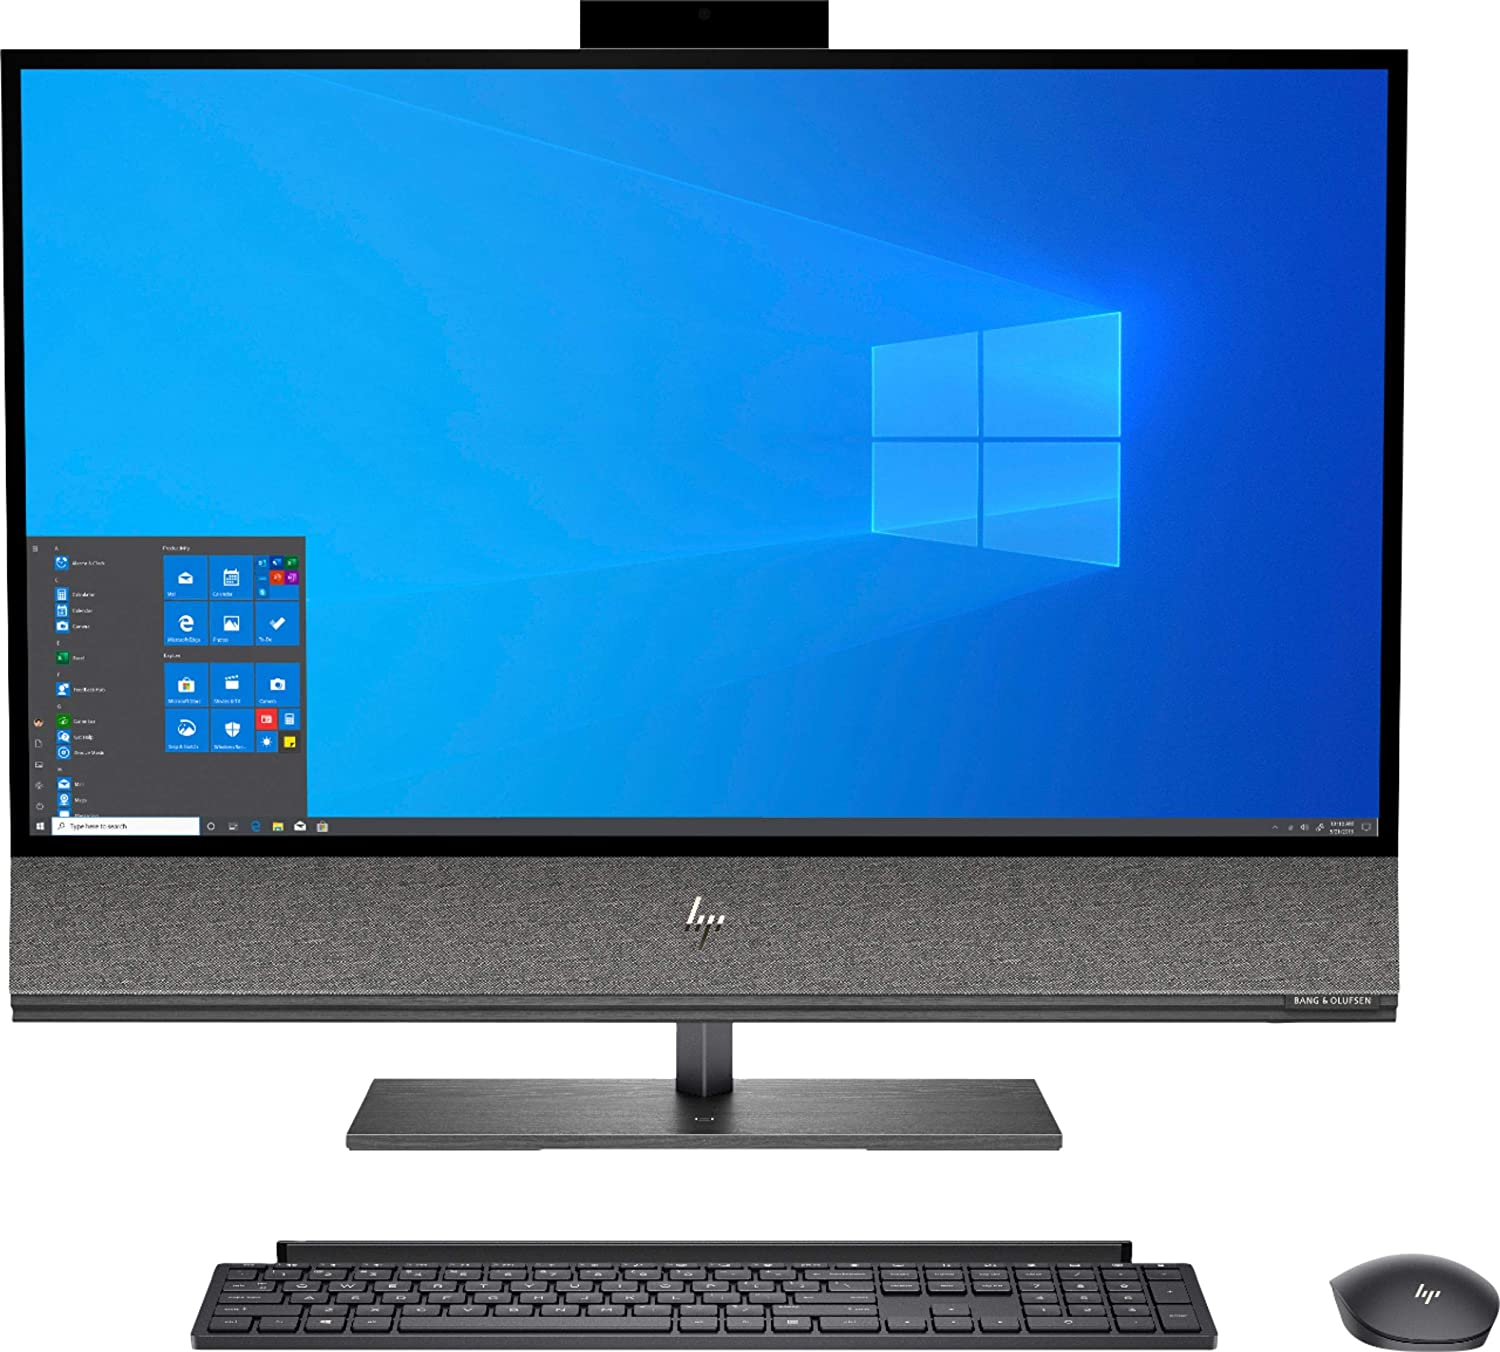 "HP Envy 32-A0014 AIO - 31.5"" 4K - i7-9700 - NVIDIA GeForce GTX 1650-16GB - 512GB SSD"